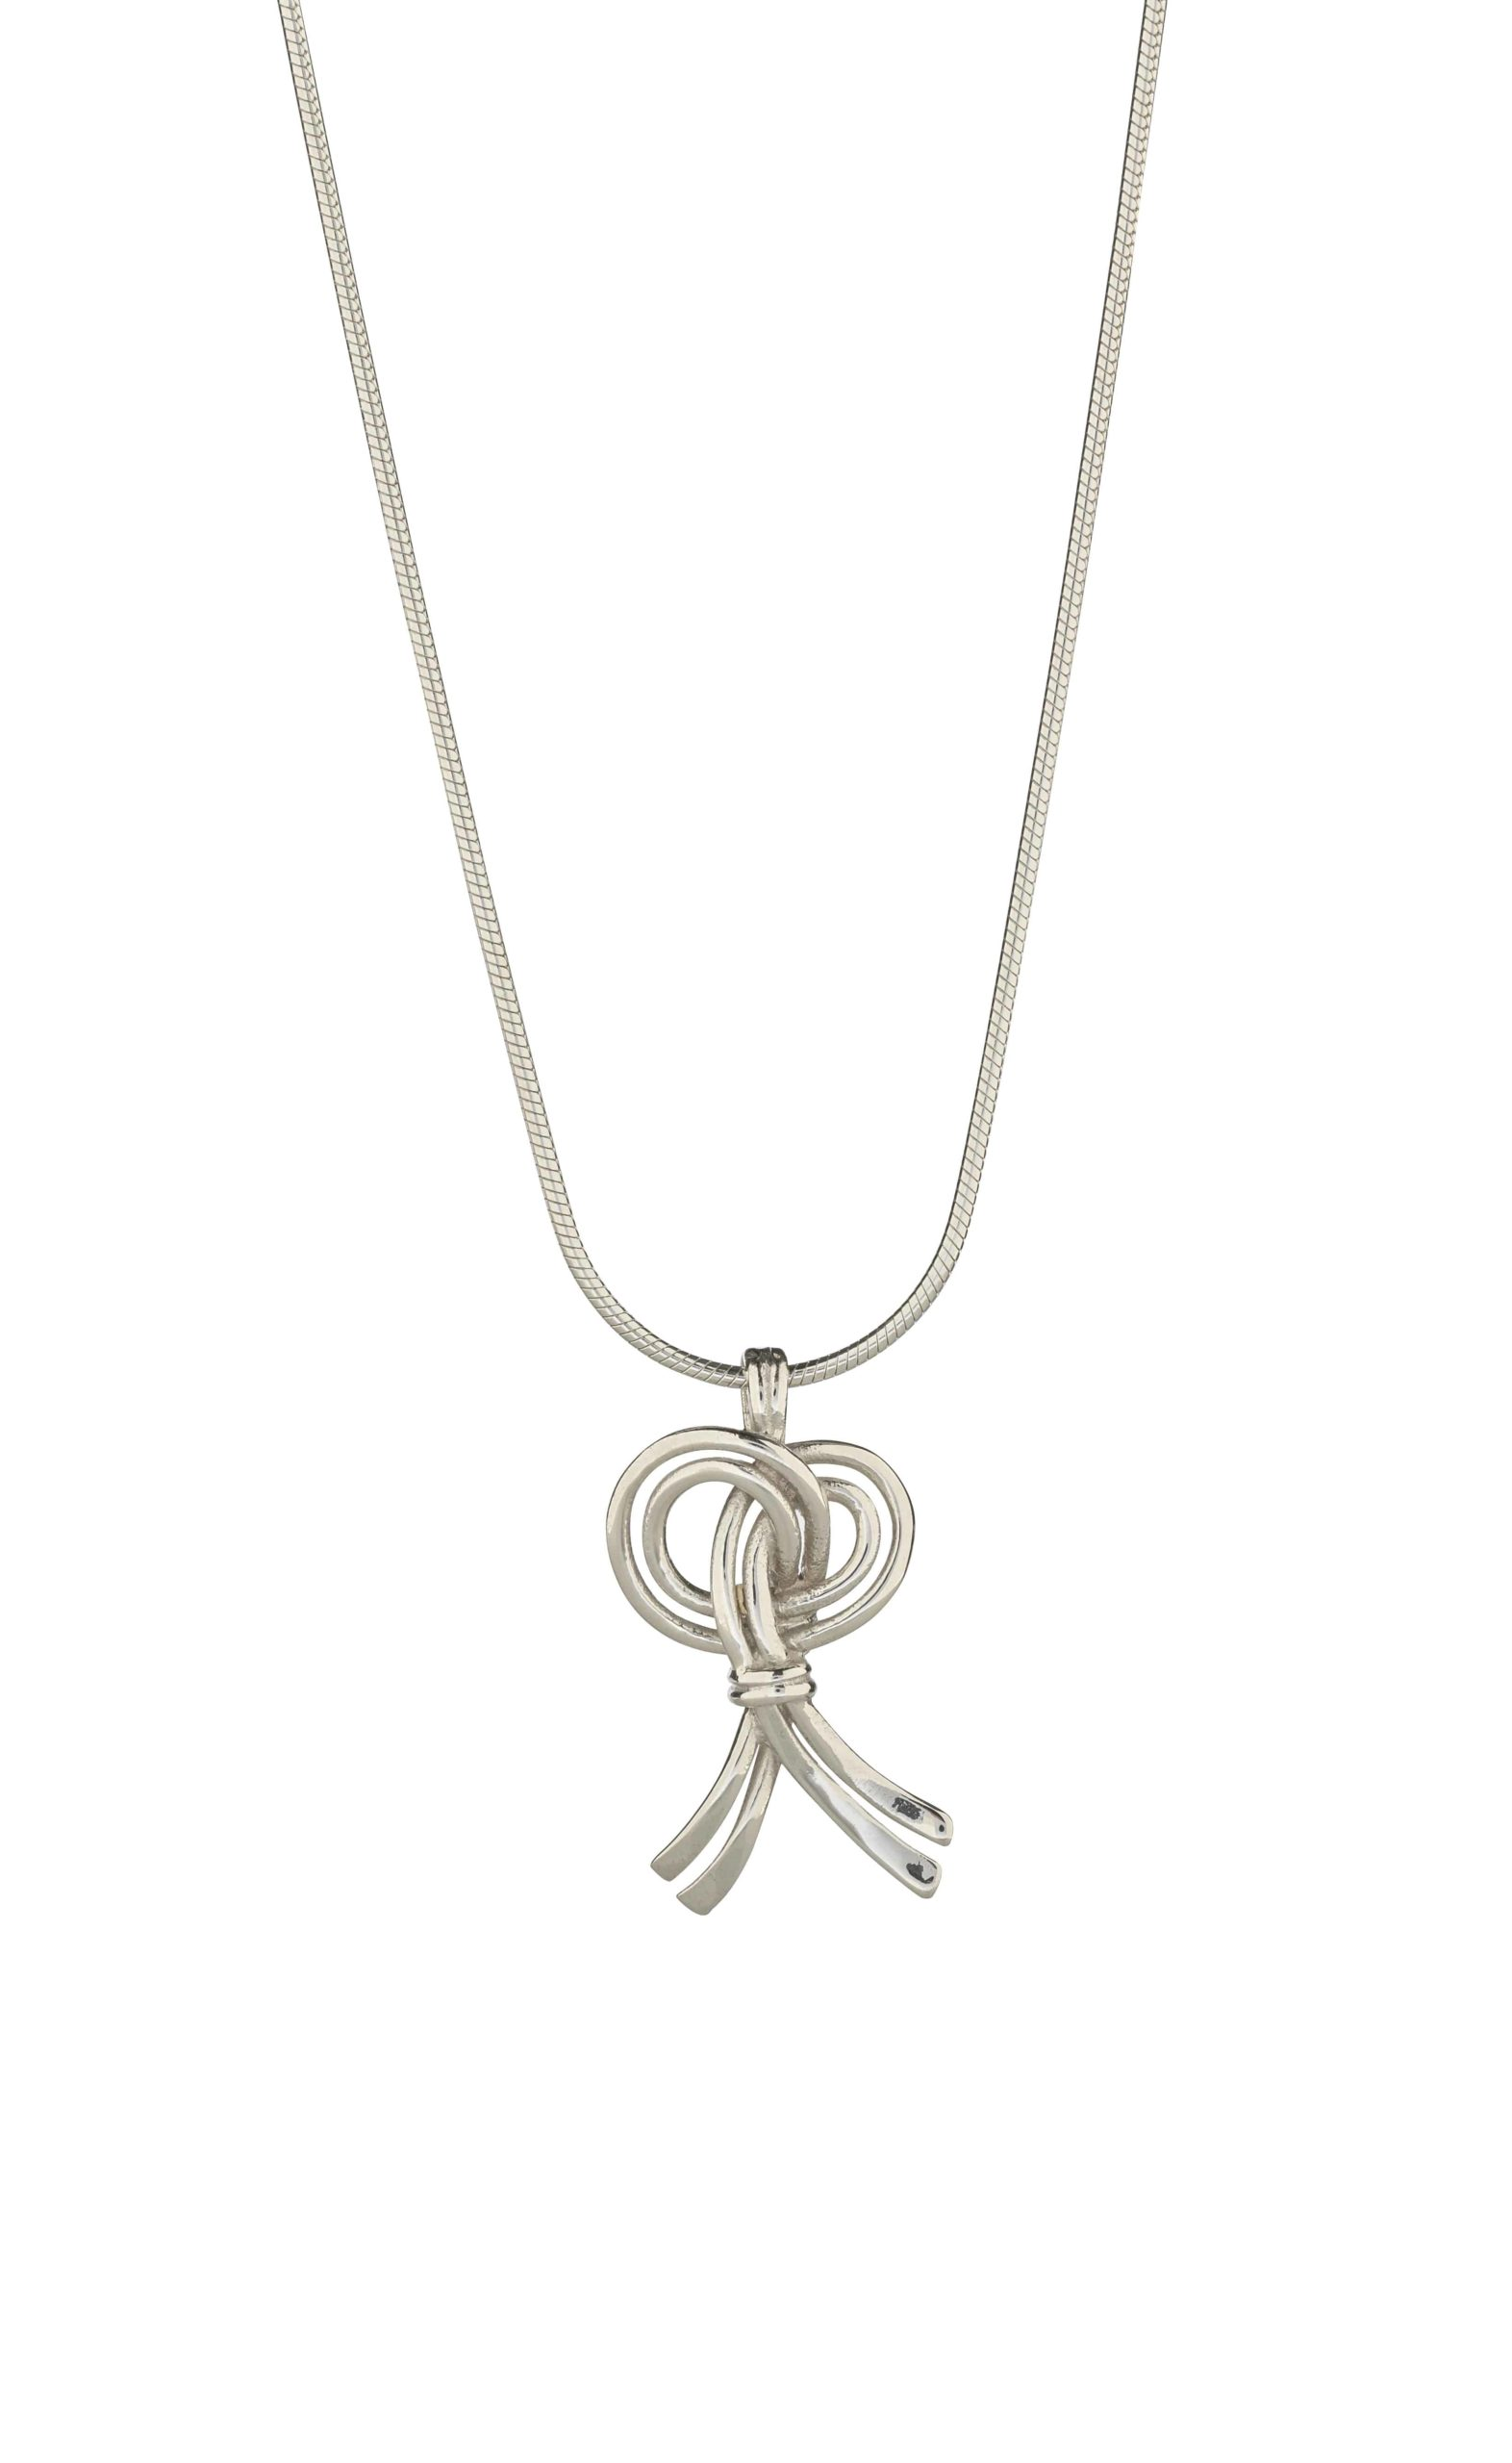 Product Harvest Knot Large Pendant and Chain Jewellery